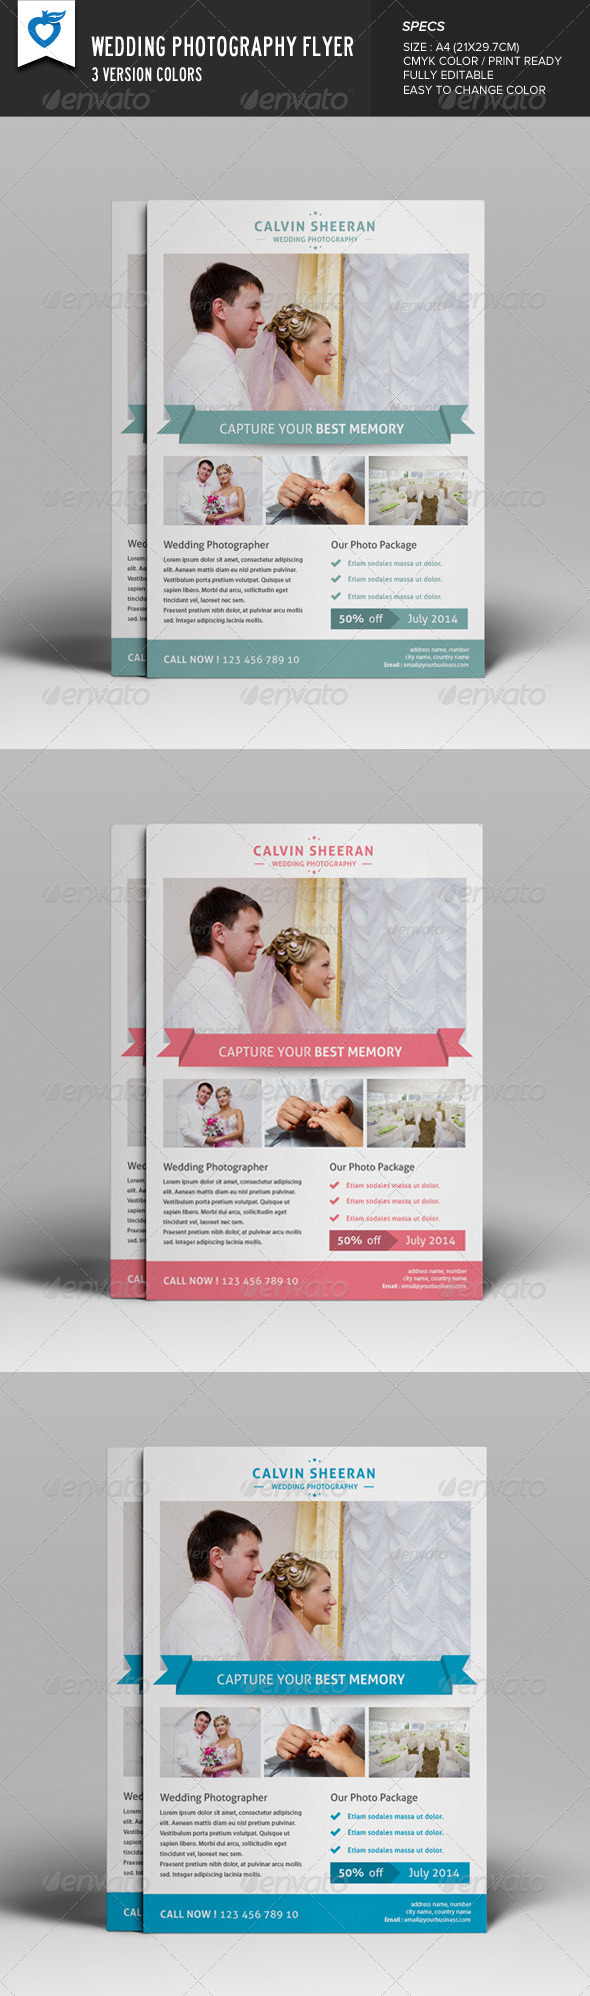 GraphicRiver Wedding Photography Flyer 8203713